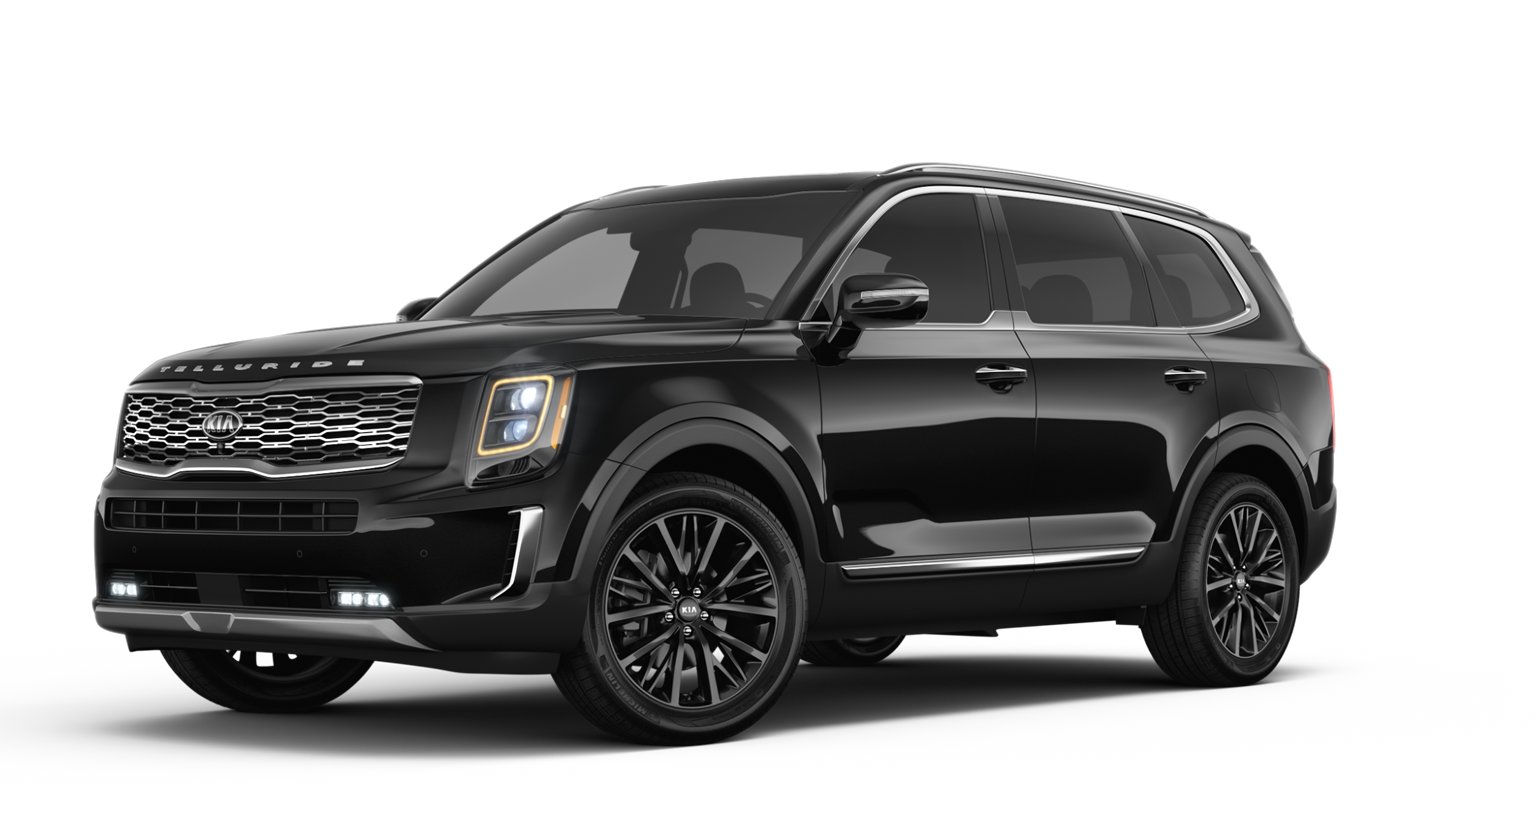 2020 Kia Telluride Build Price Colors Packages Kia Best Midsize Suv Mid Size Suv Best Compact Suv